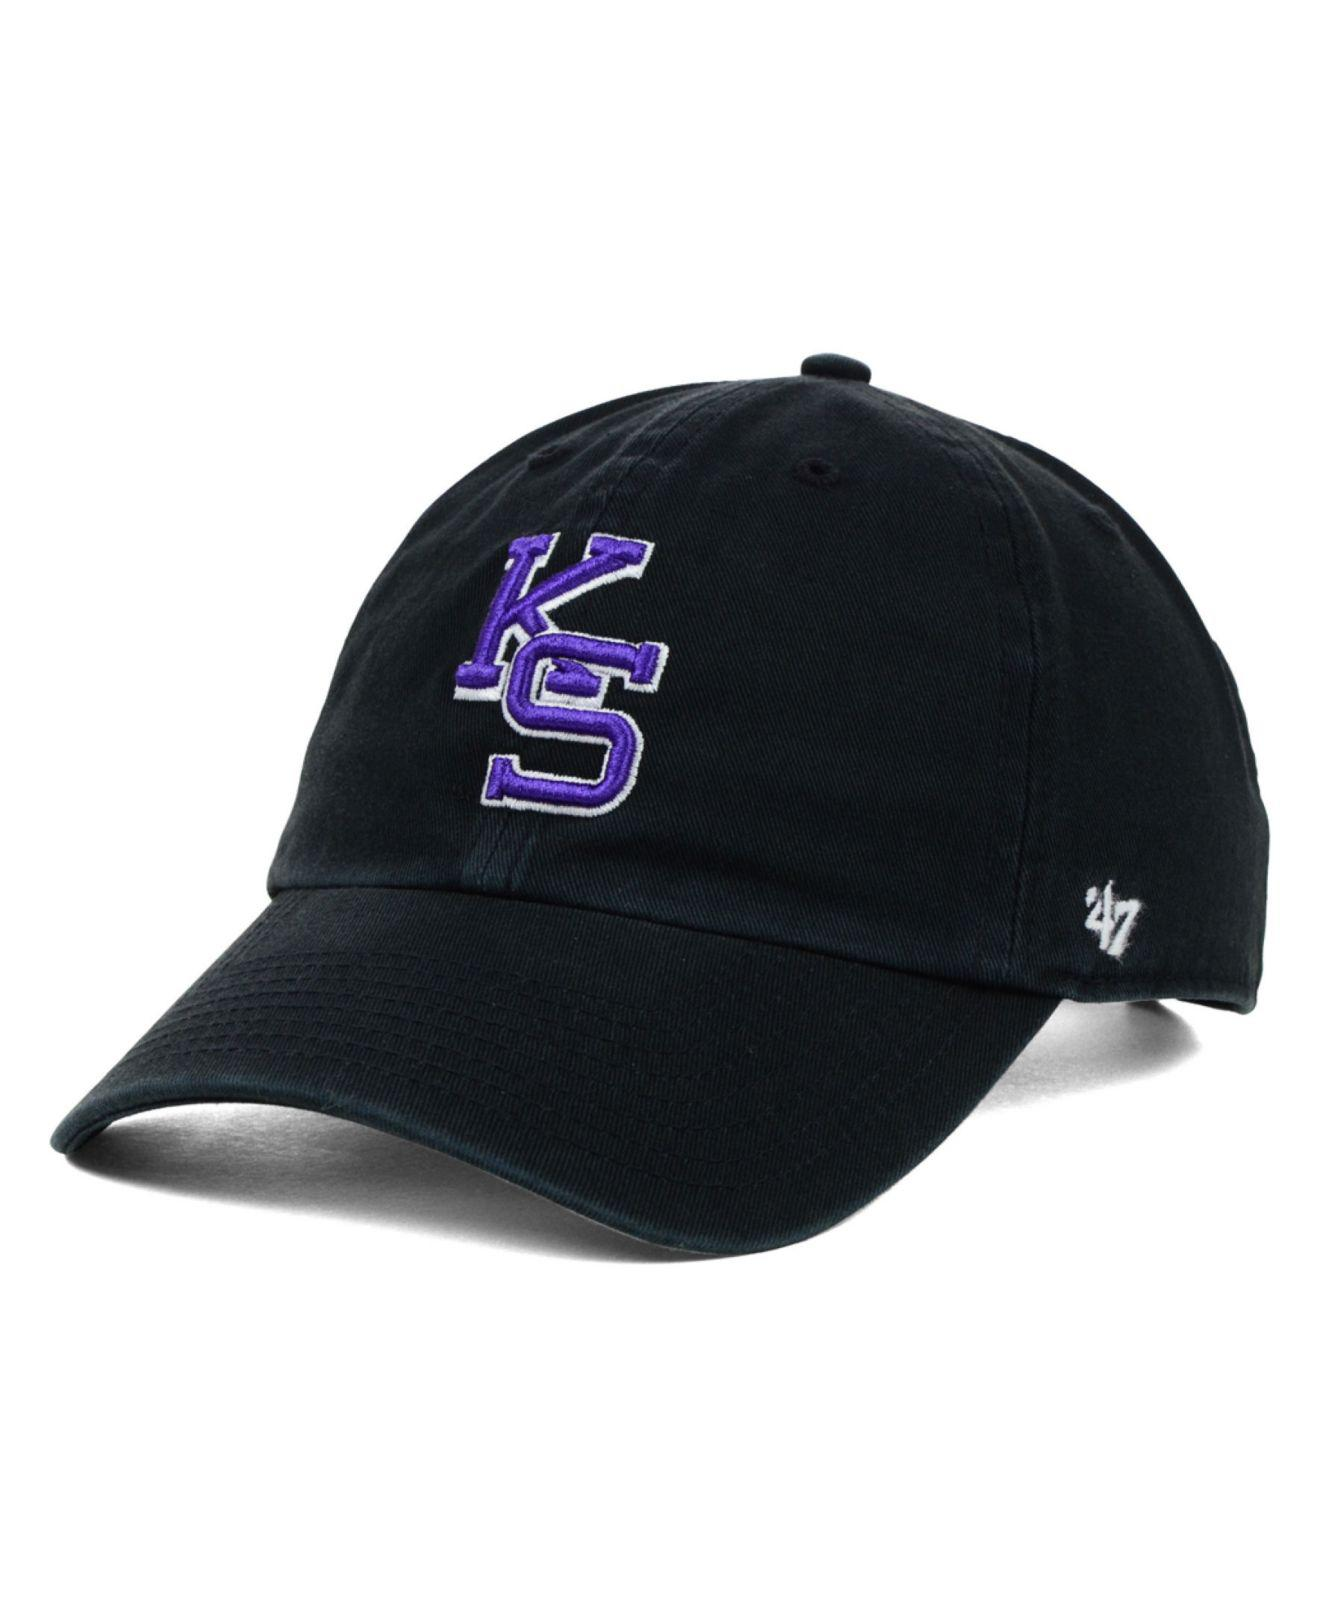 low priced 67aff 5e2ff Lyst - 47 Brand Kansas State Wildcats Clean-up Cap in Black for Men